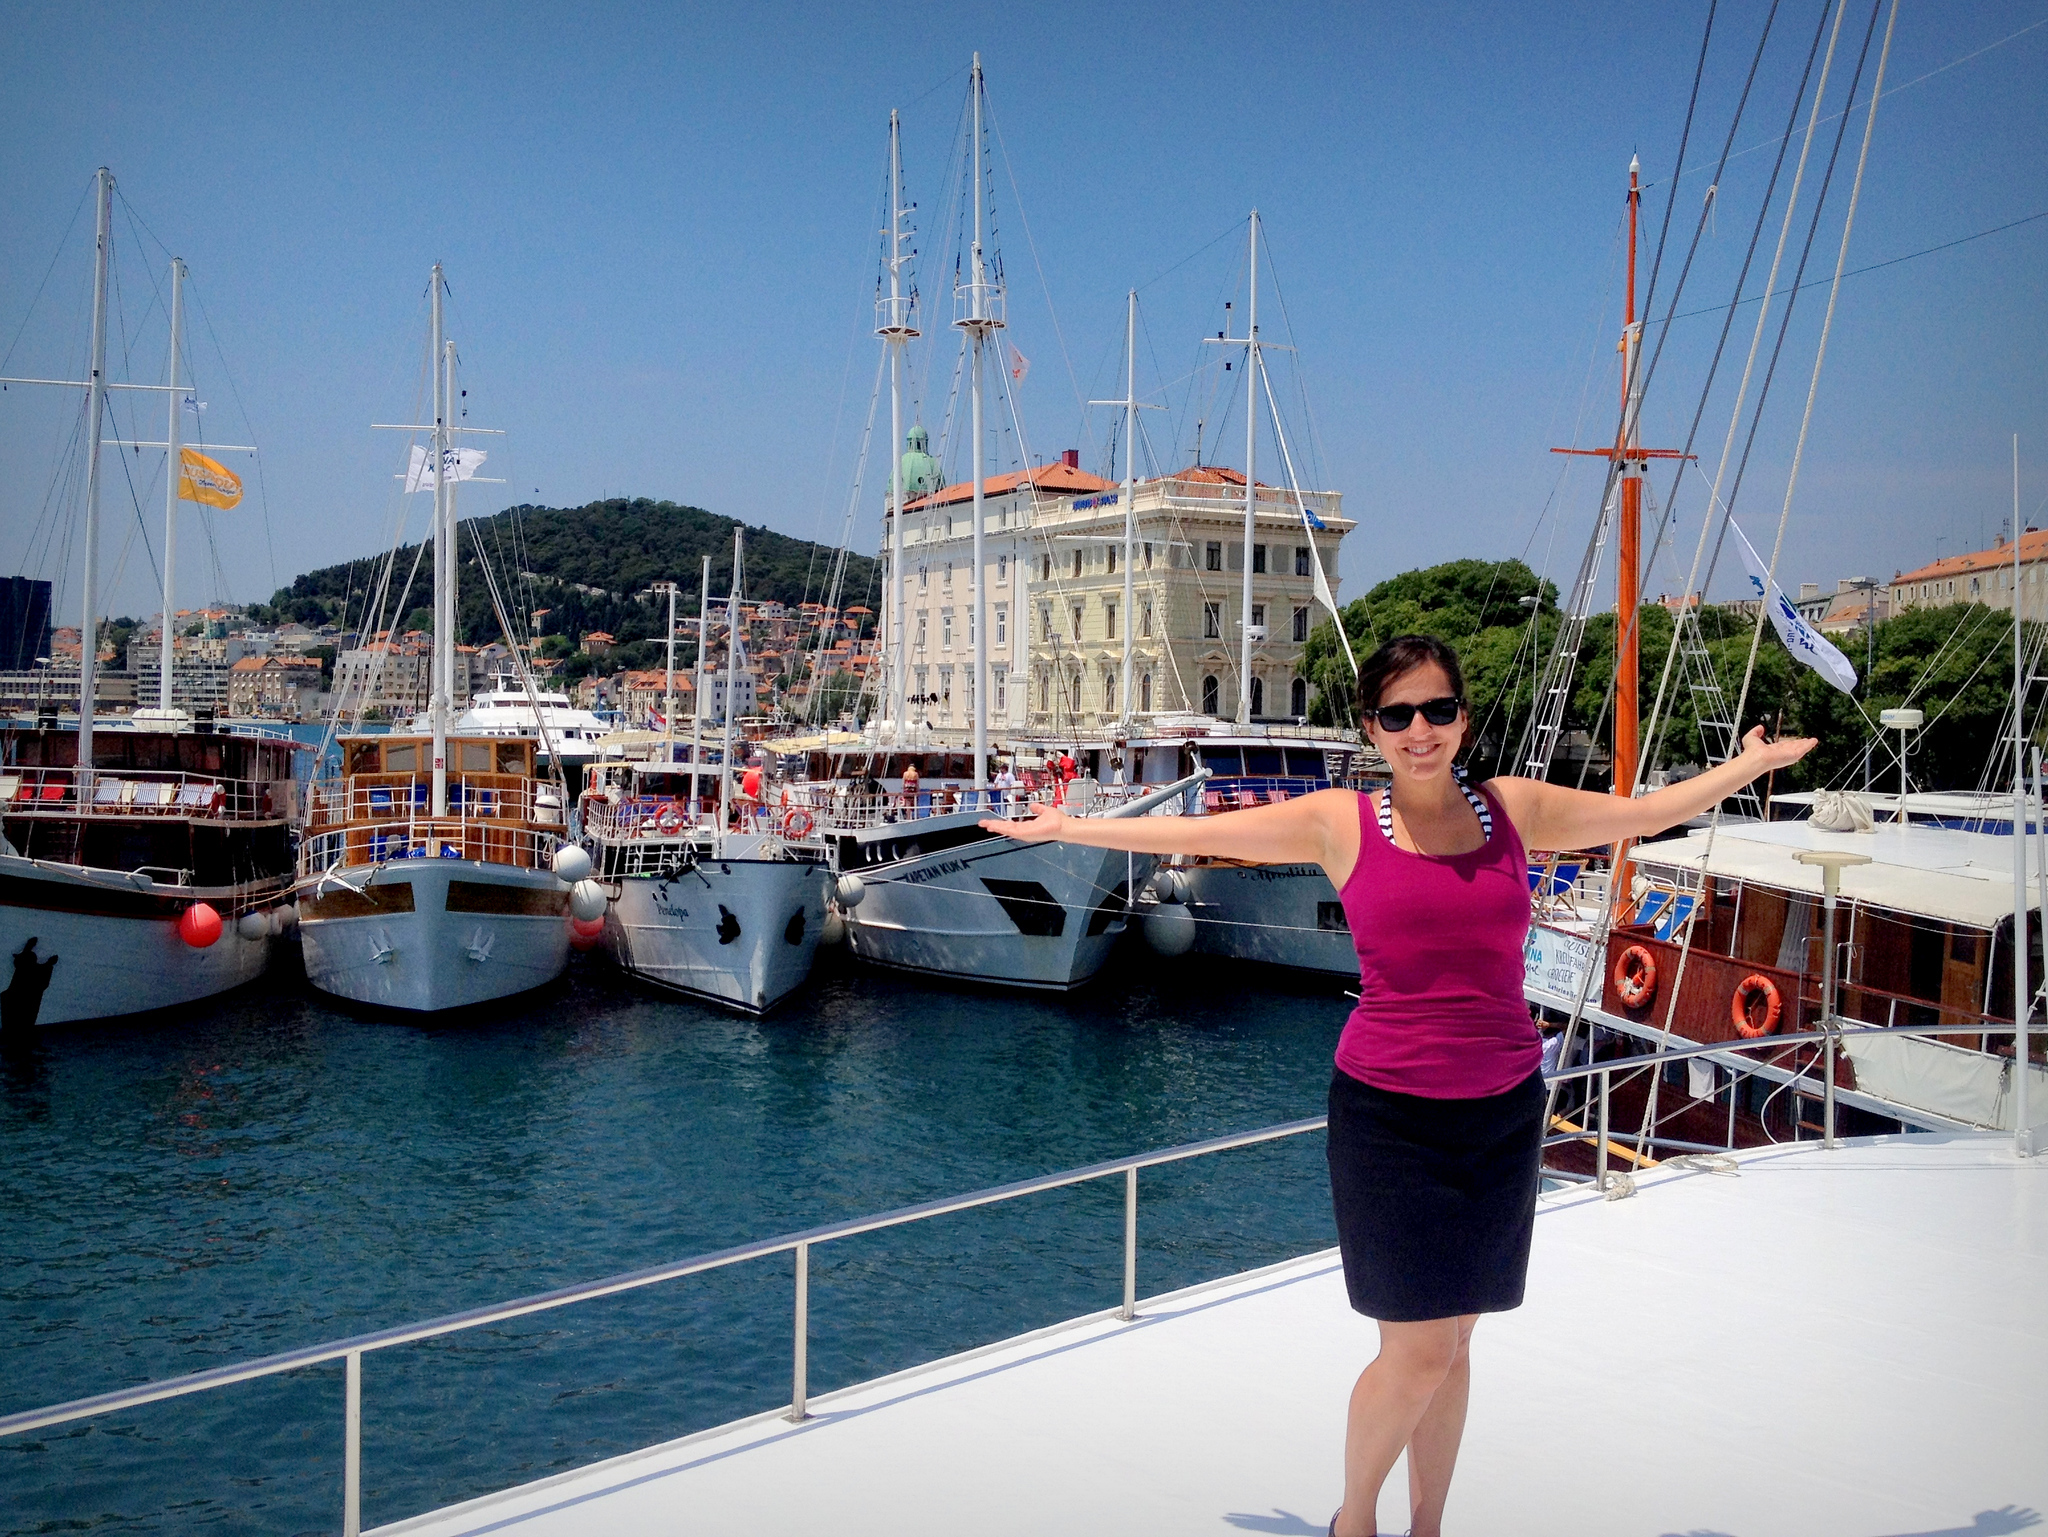 Kate wears a raspberry tank top and black skirt and poses with her arms out in front of the port of Split.